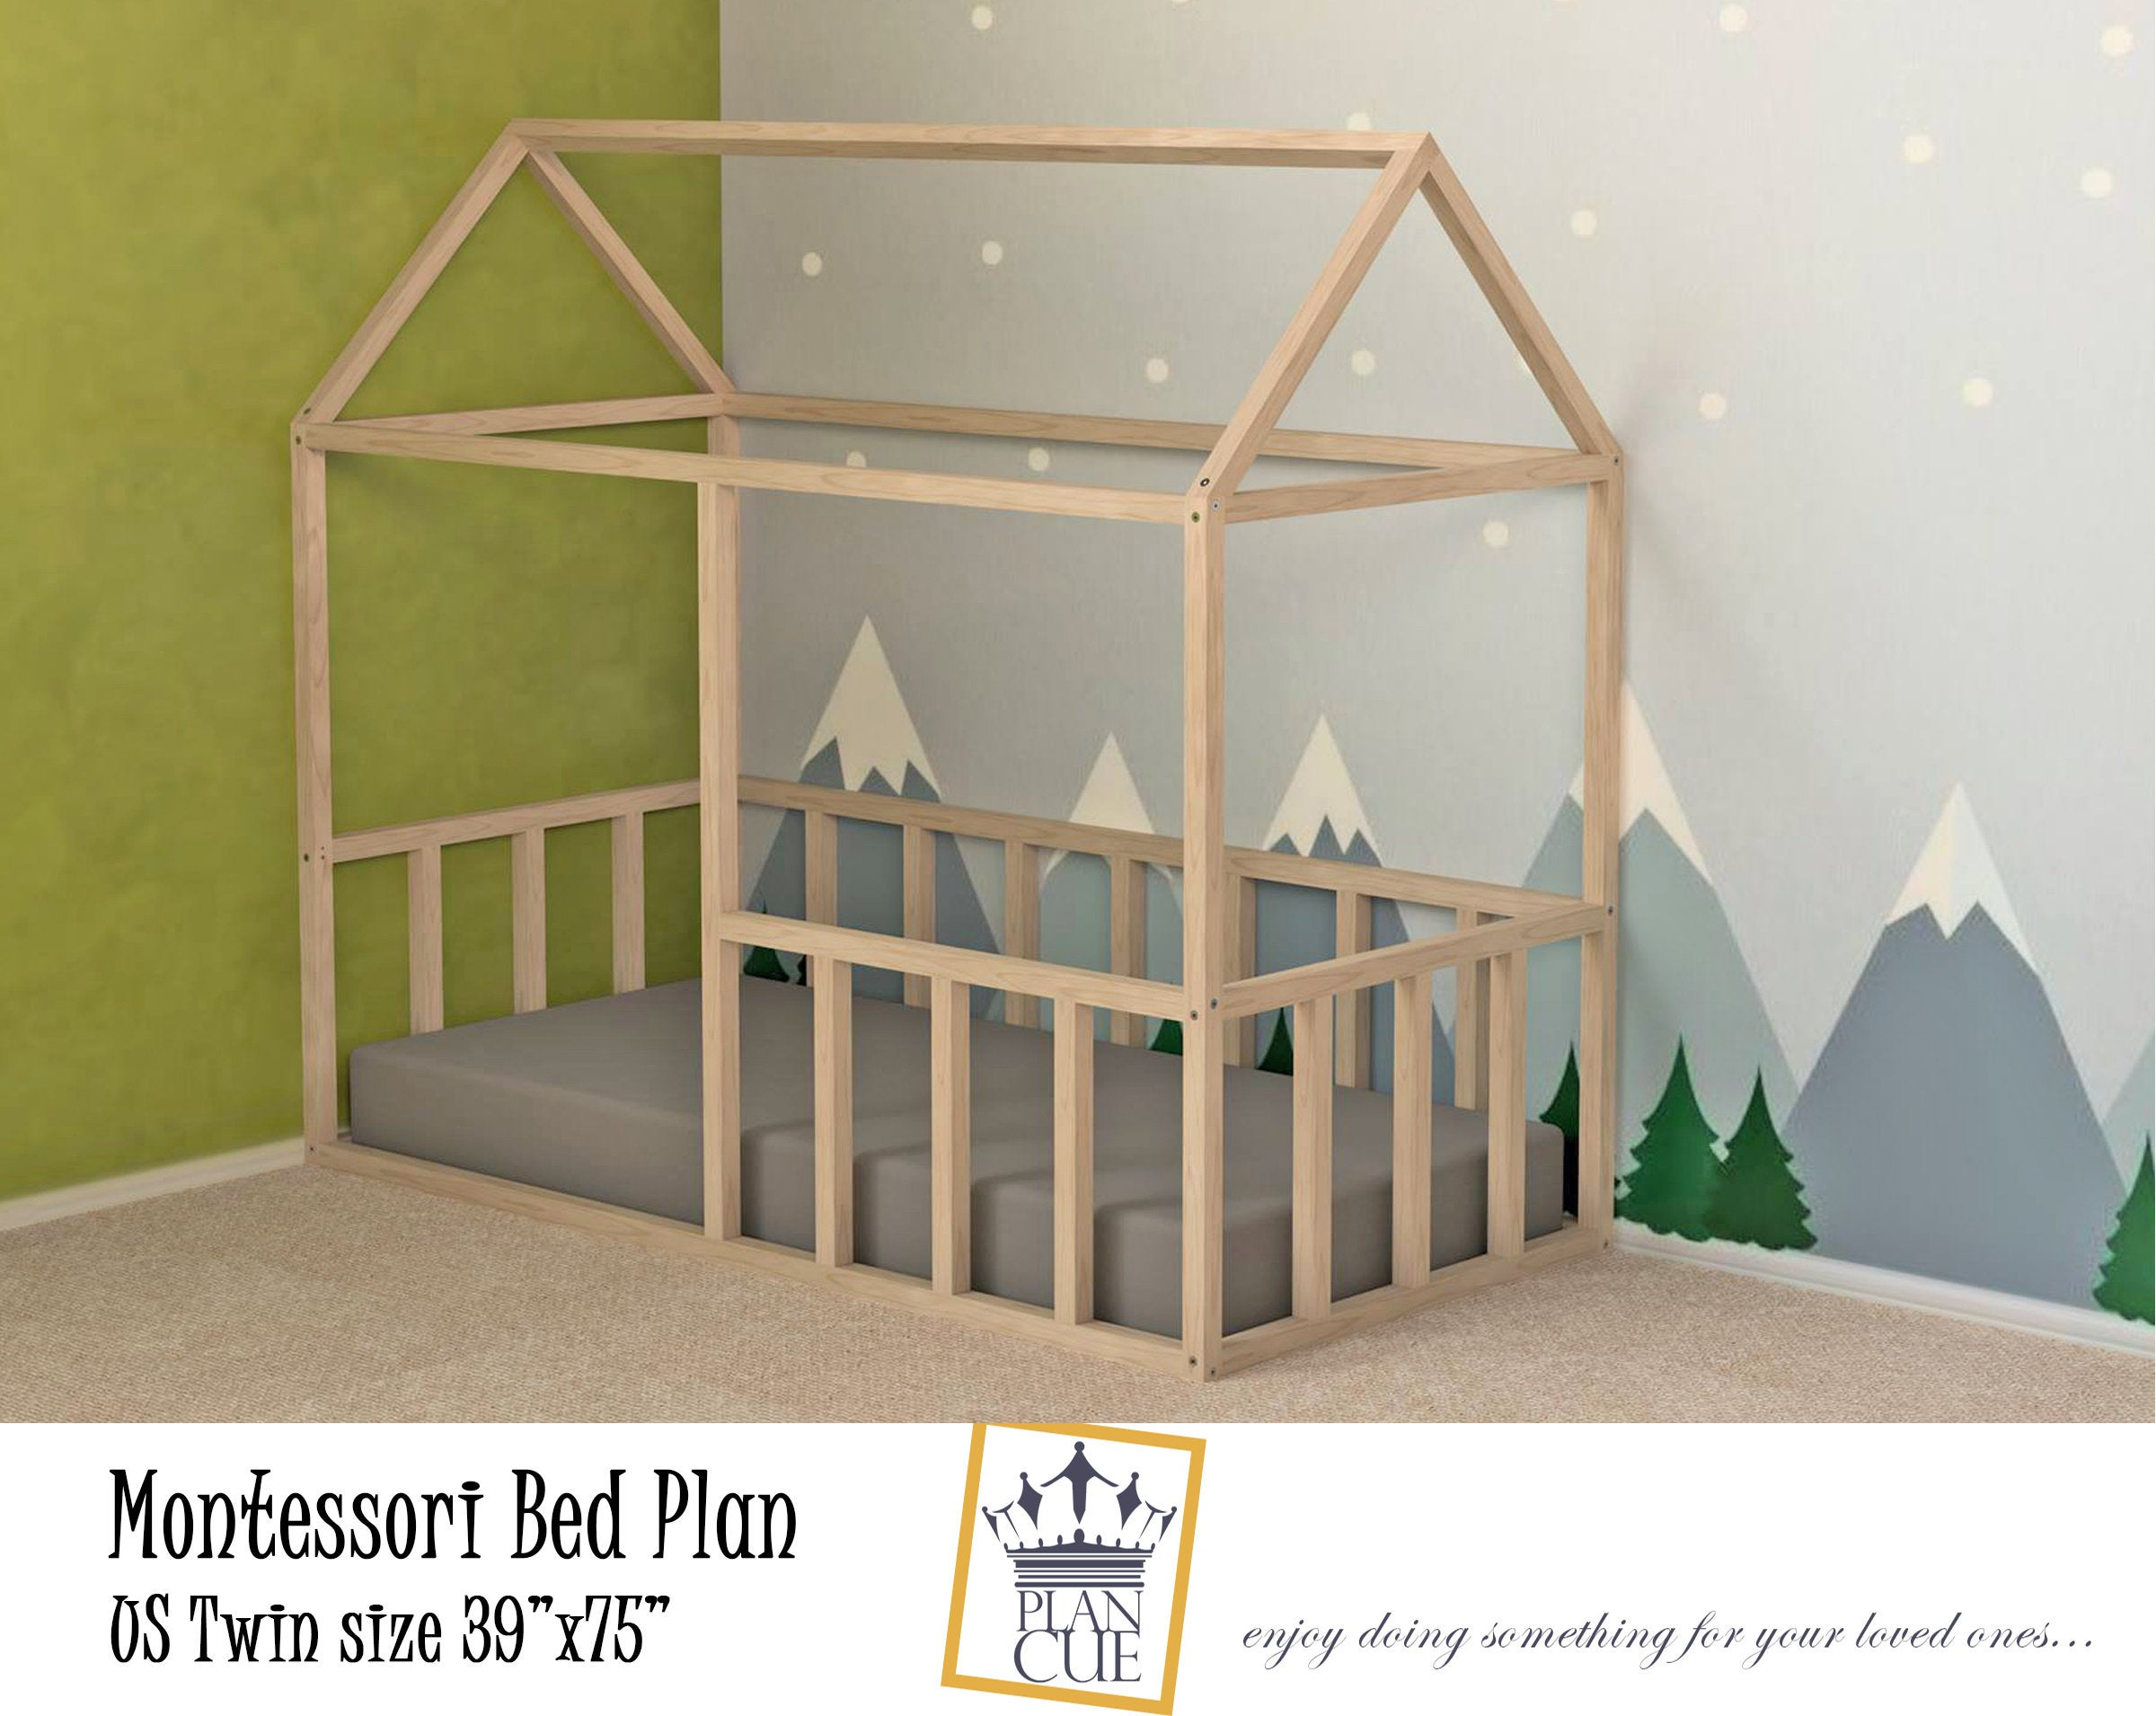 10 Diy Montessori Floor House Beds Free Plans If Only April